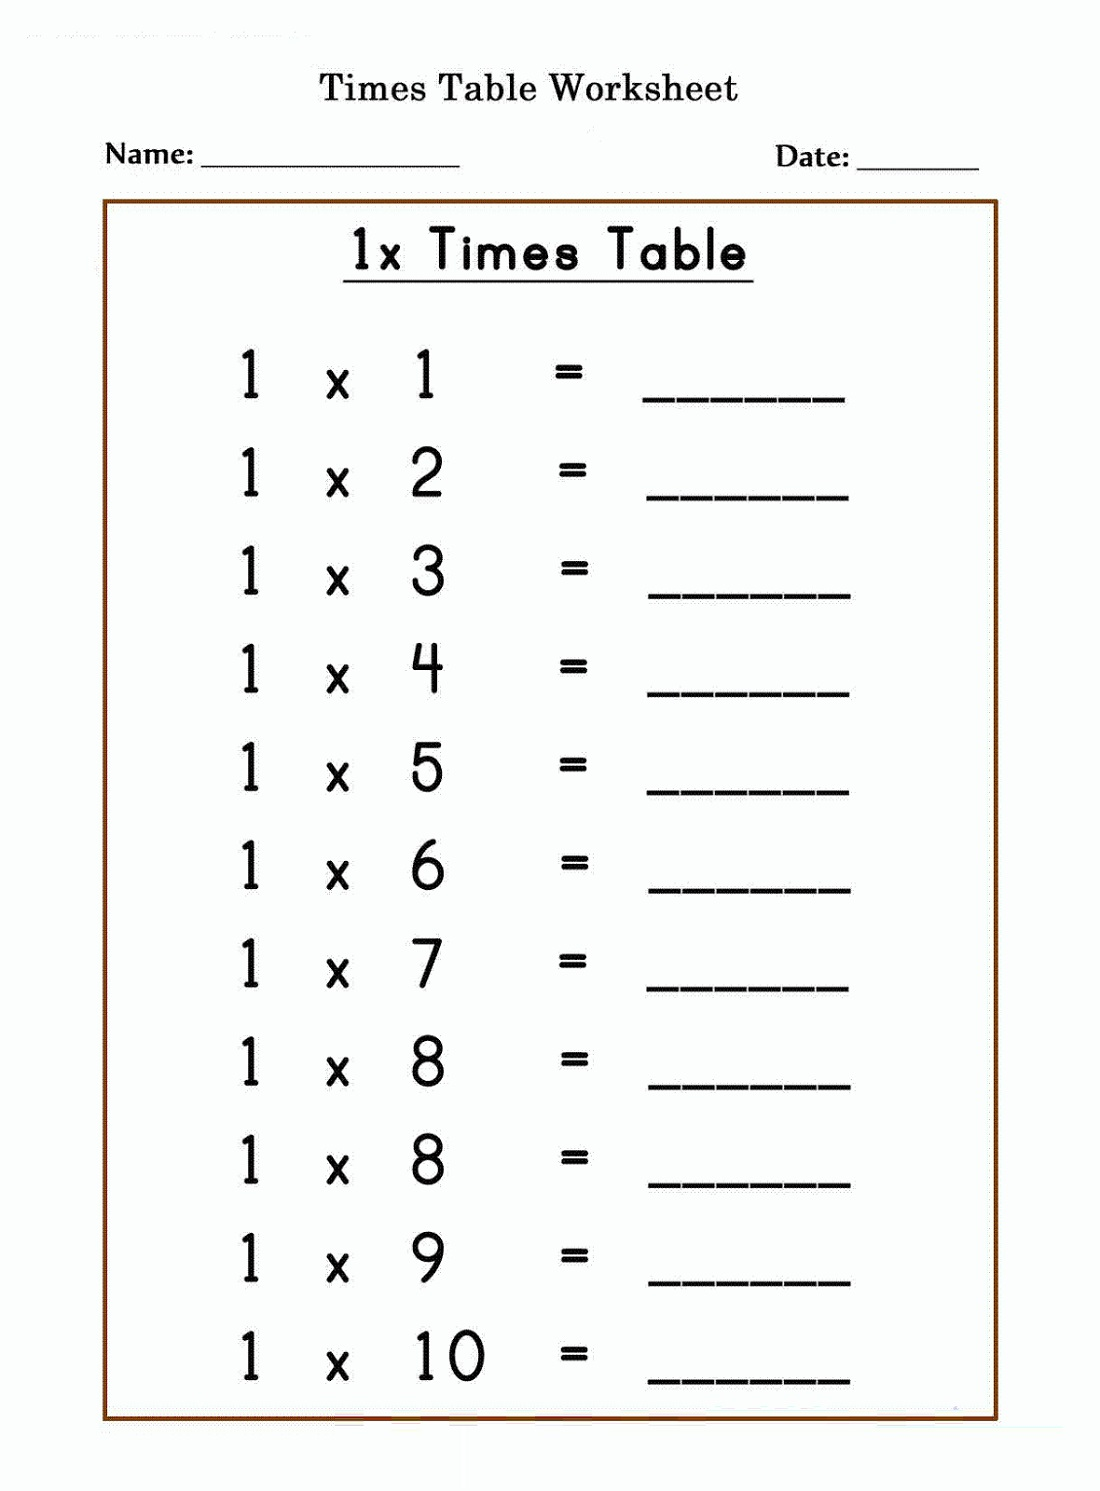 Easy 1 Times Tables Worksheet